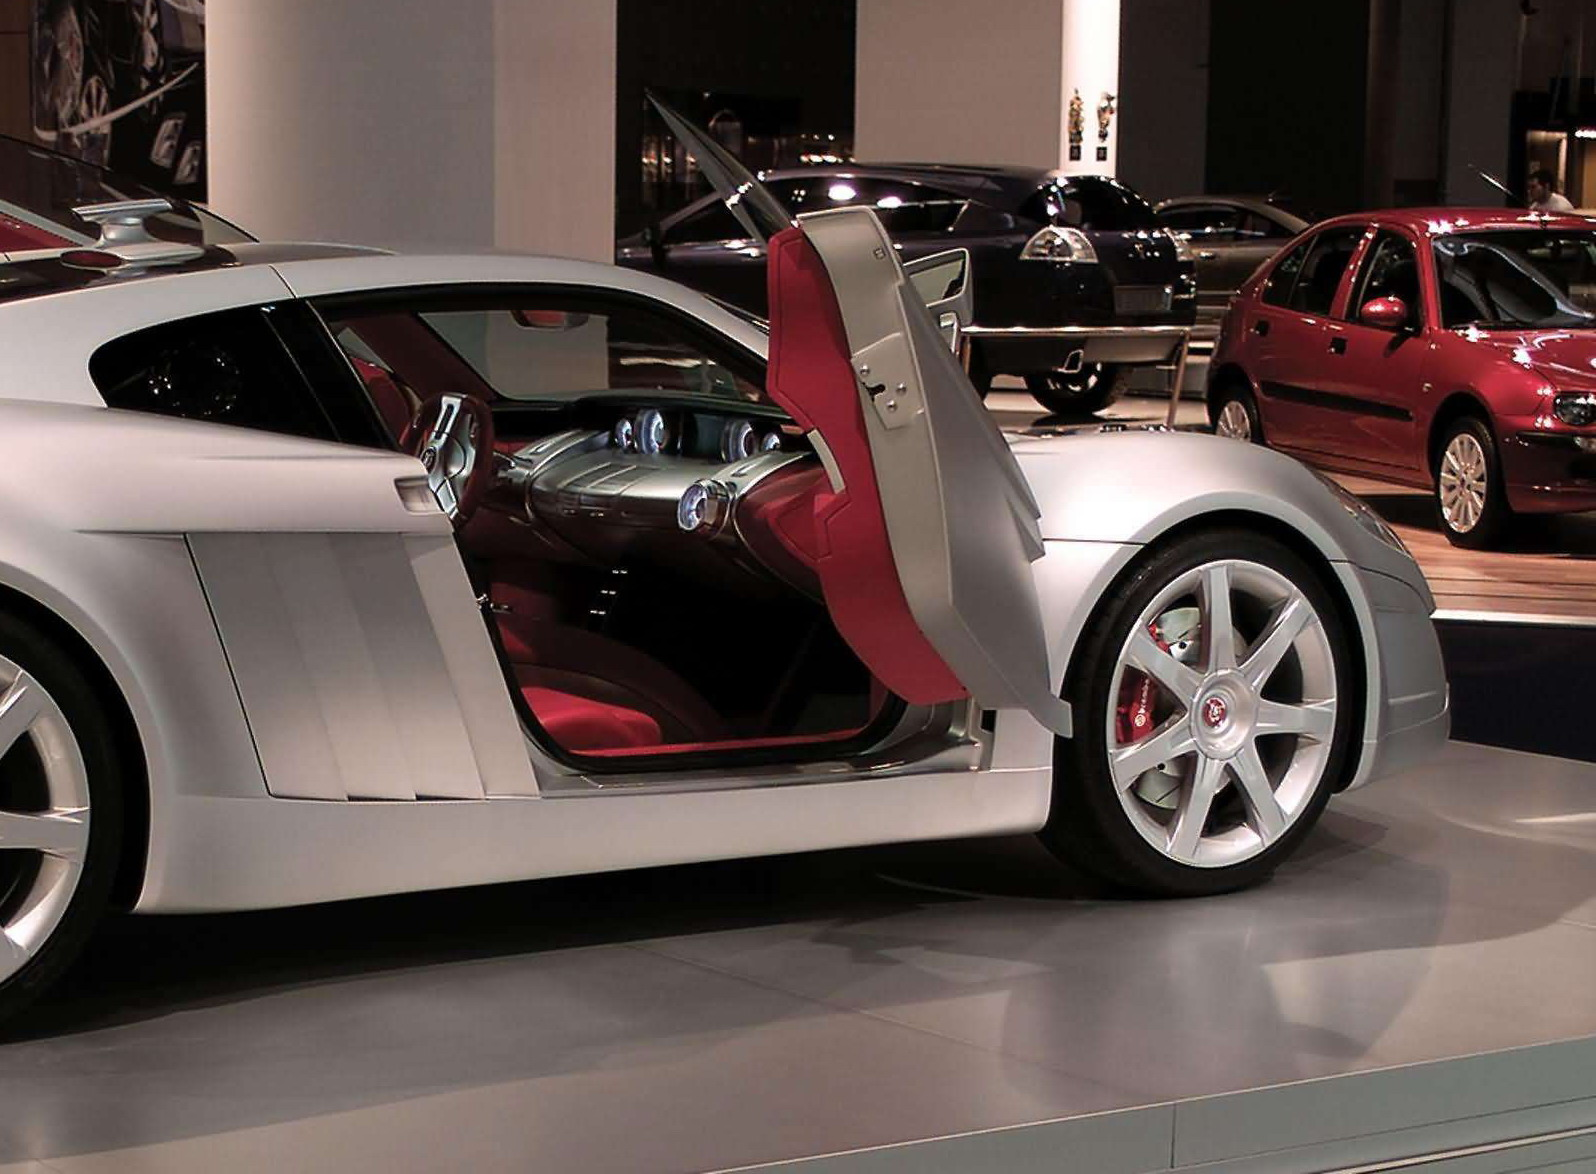 2003 Jaguar XF 10 Concept By Fuore Design Gallery 154366 | Top Speed